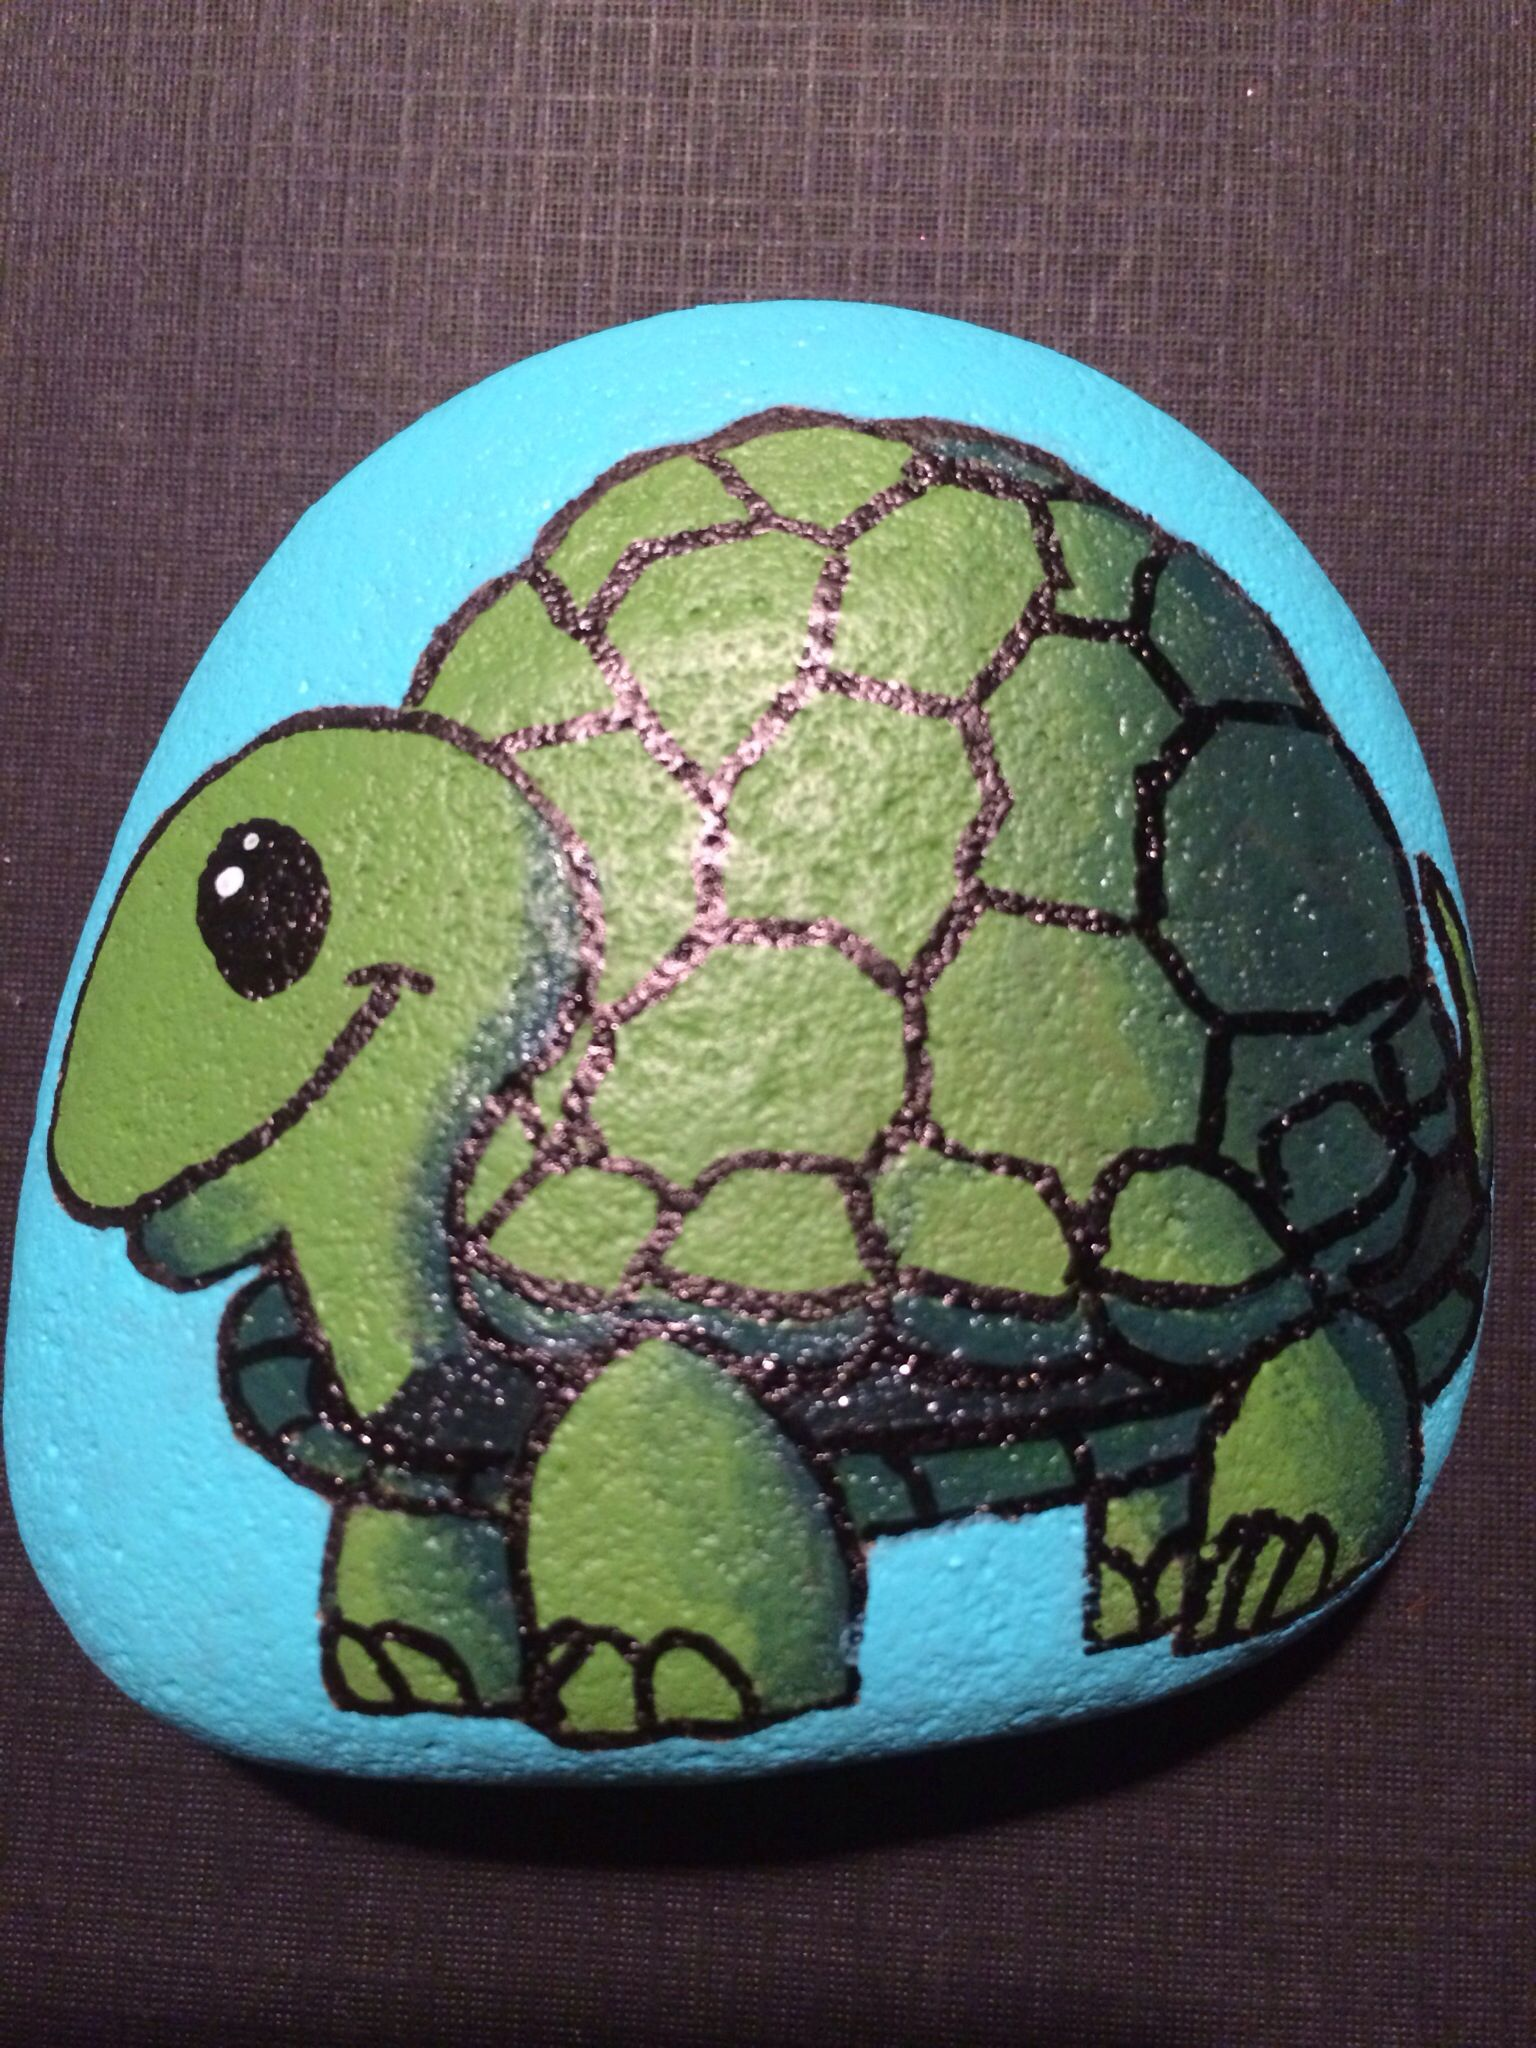 Little Turtles Rock Stands Up Painted For A Home That Accommodates Authorized Visitation